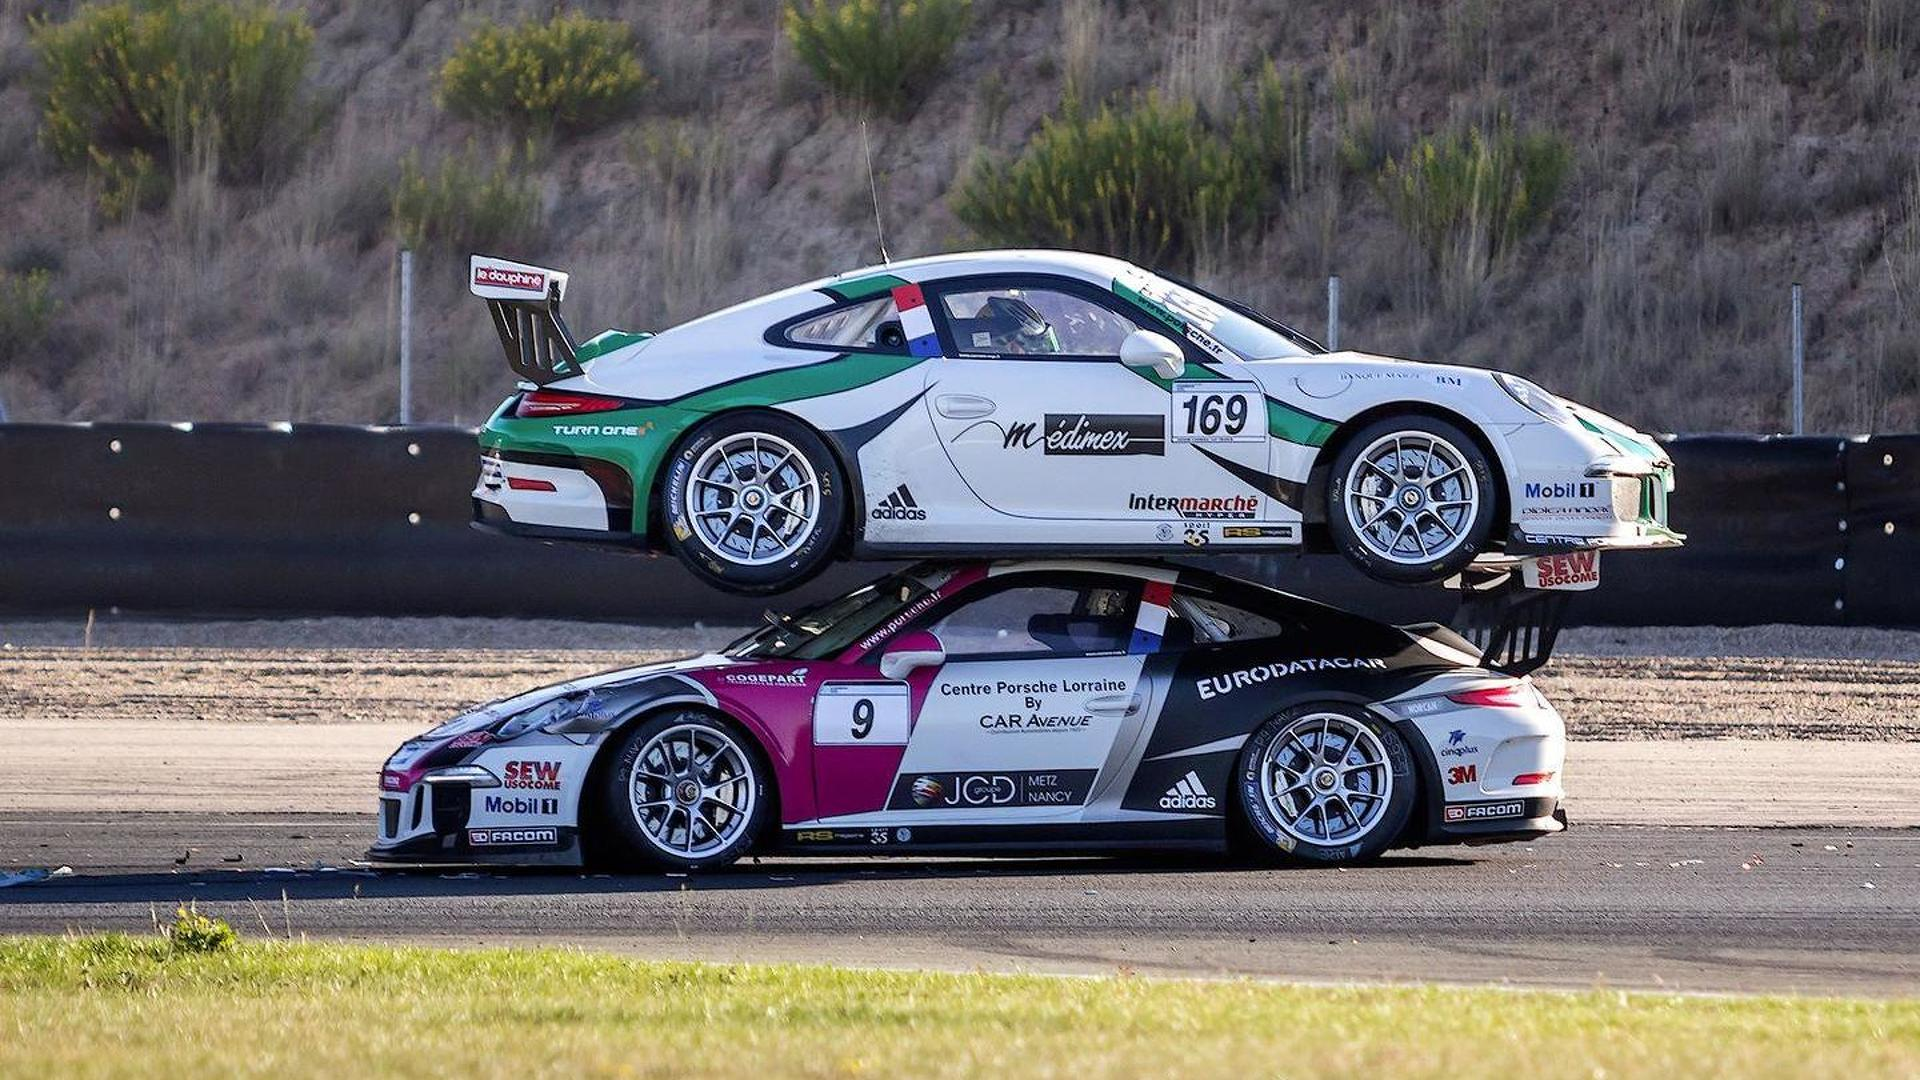 Porsche 911 GT3 racecar ends on top of another 911 GT3 at Carrera ...